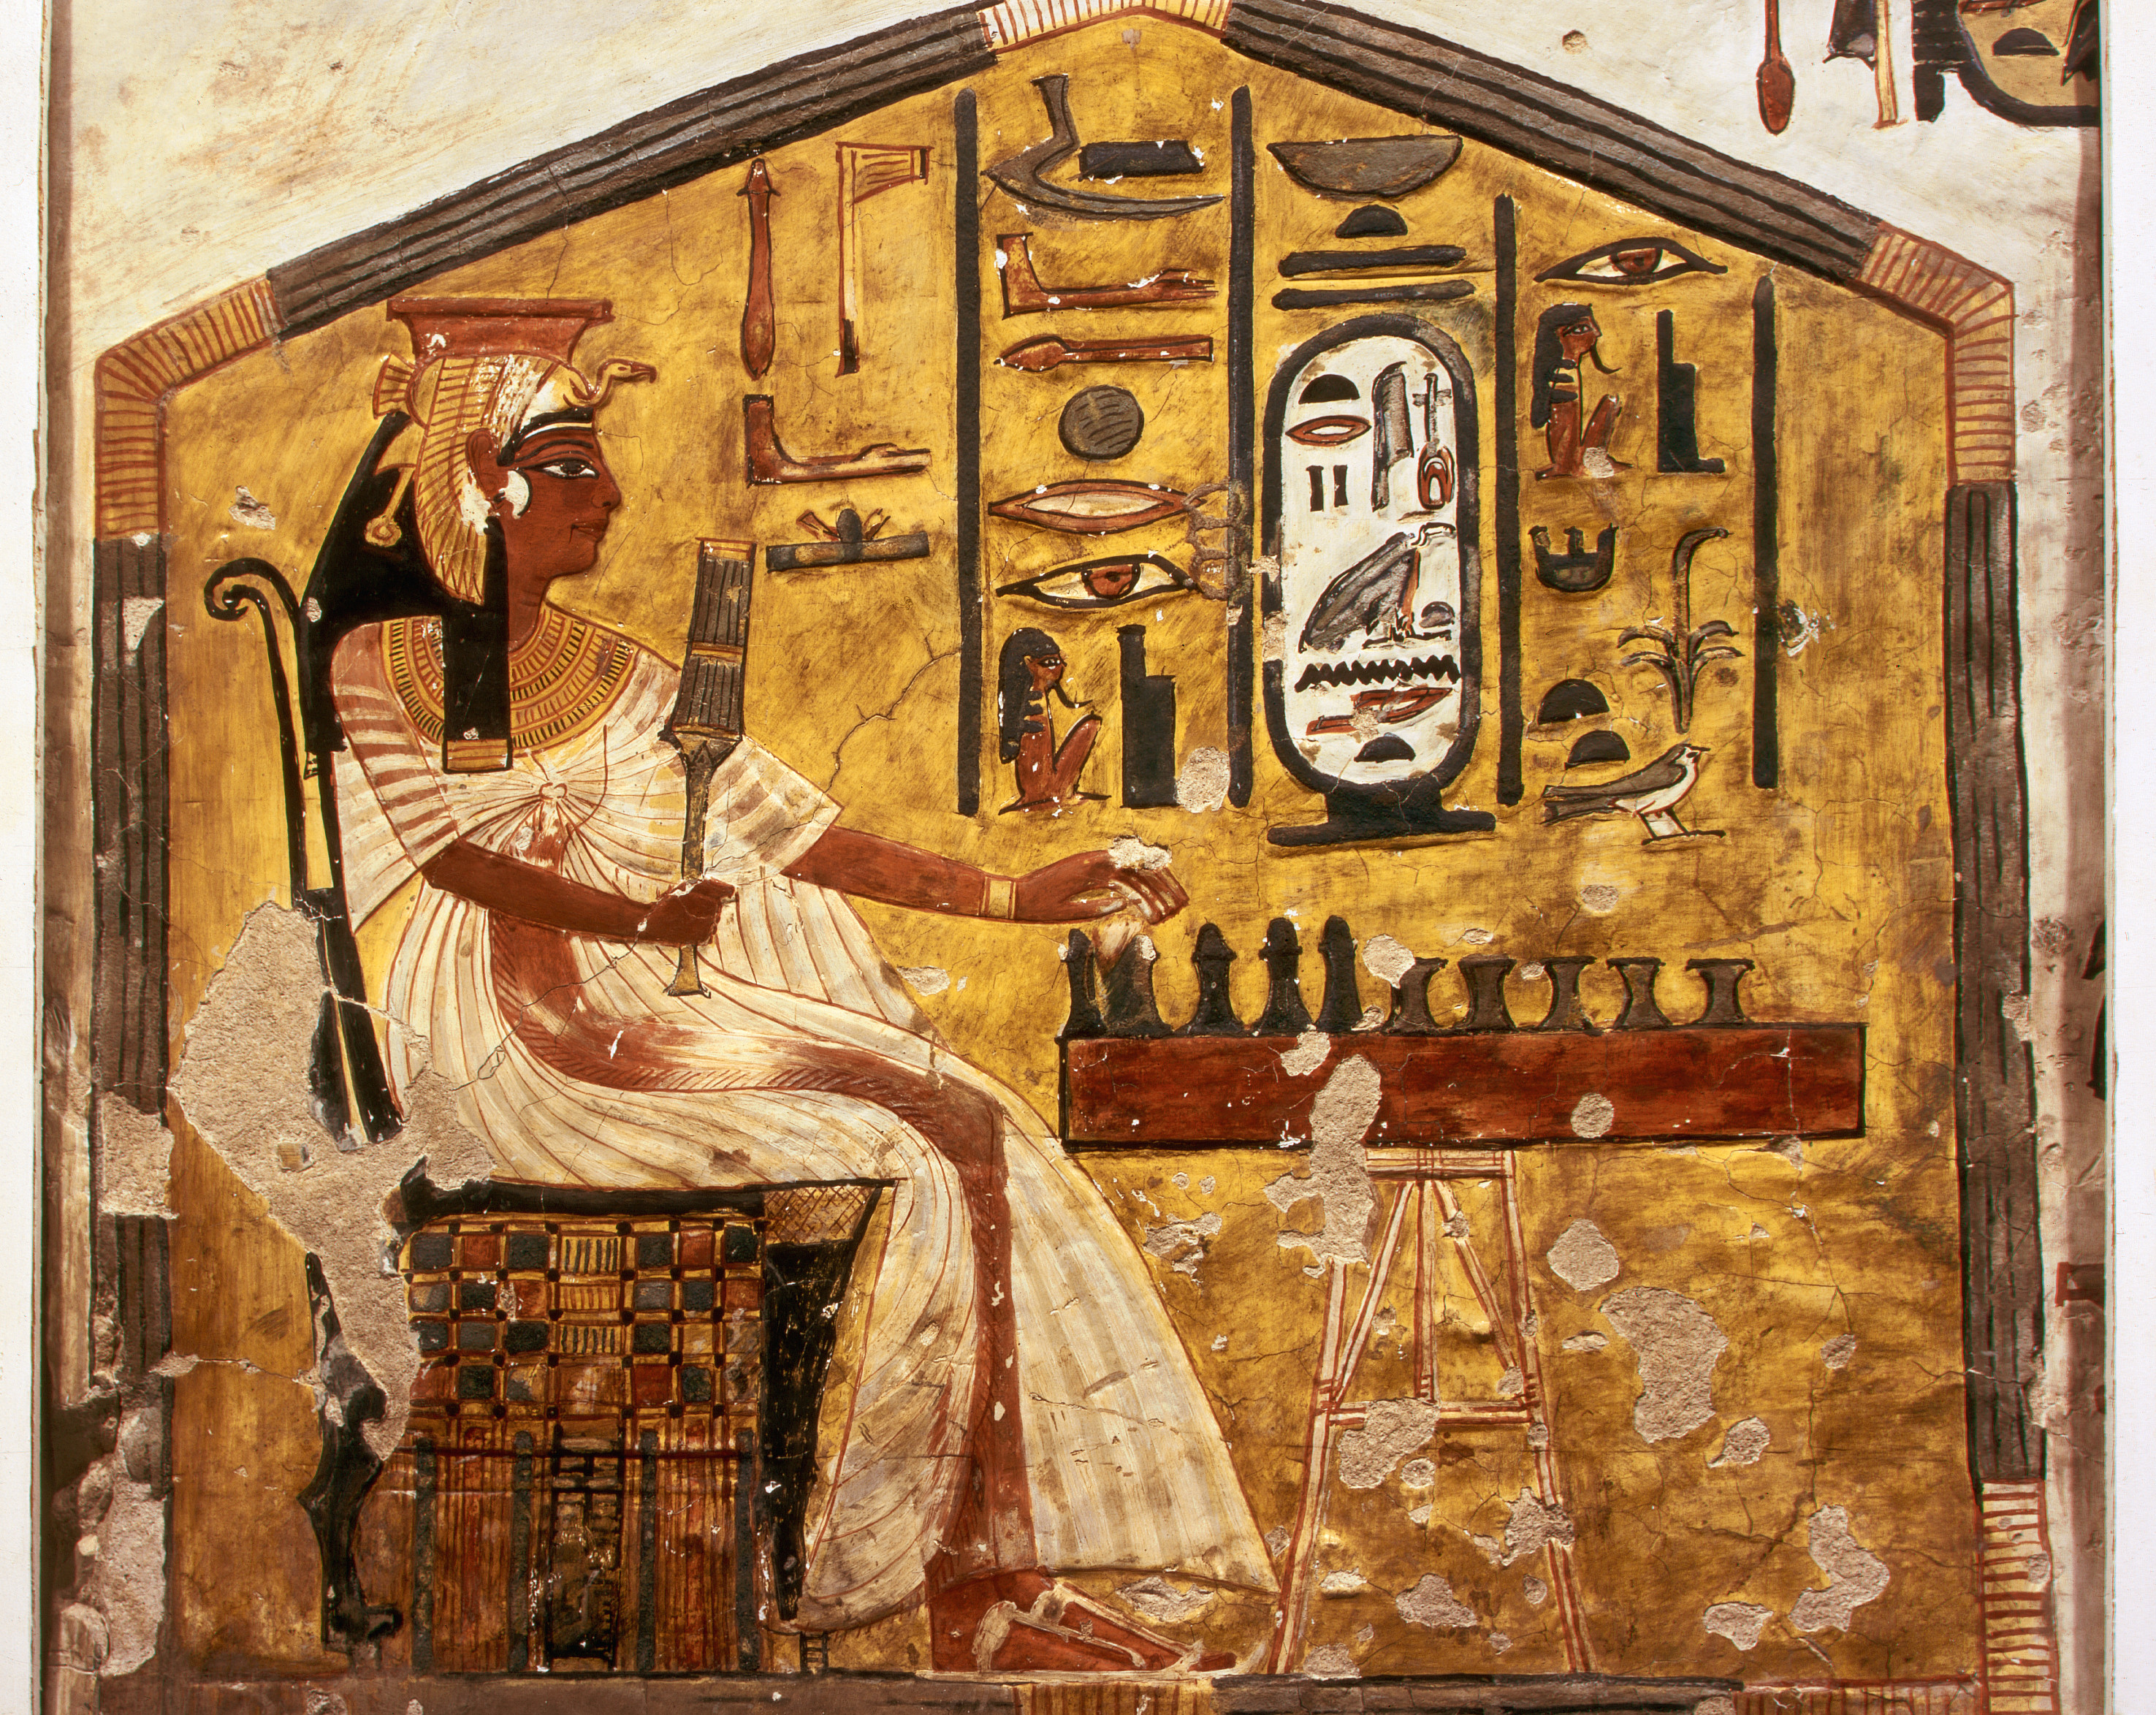 Queen Nefertiti, 1320 BCE, 1200 BCE, Ancient Egypt, Egyptian Relief Painting